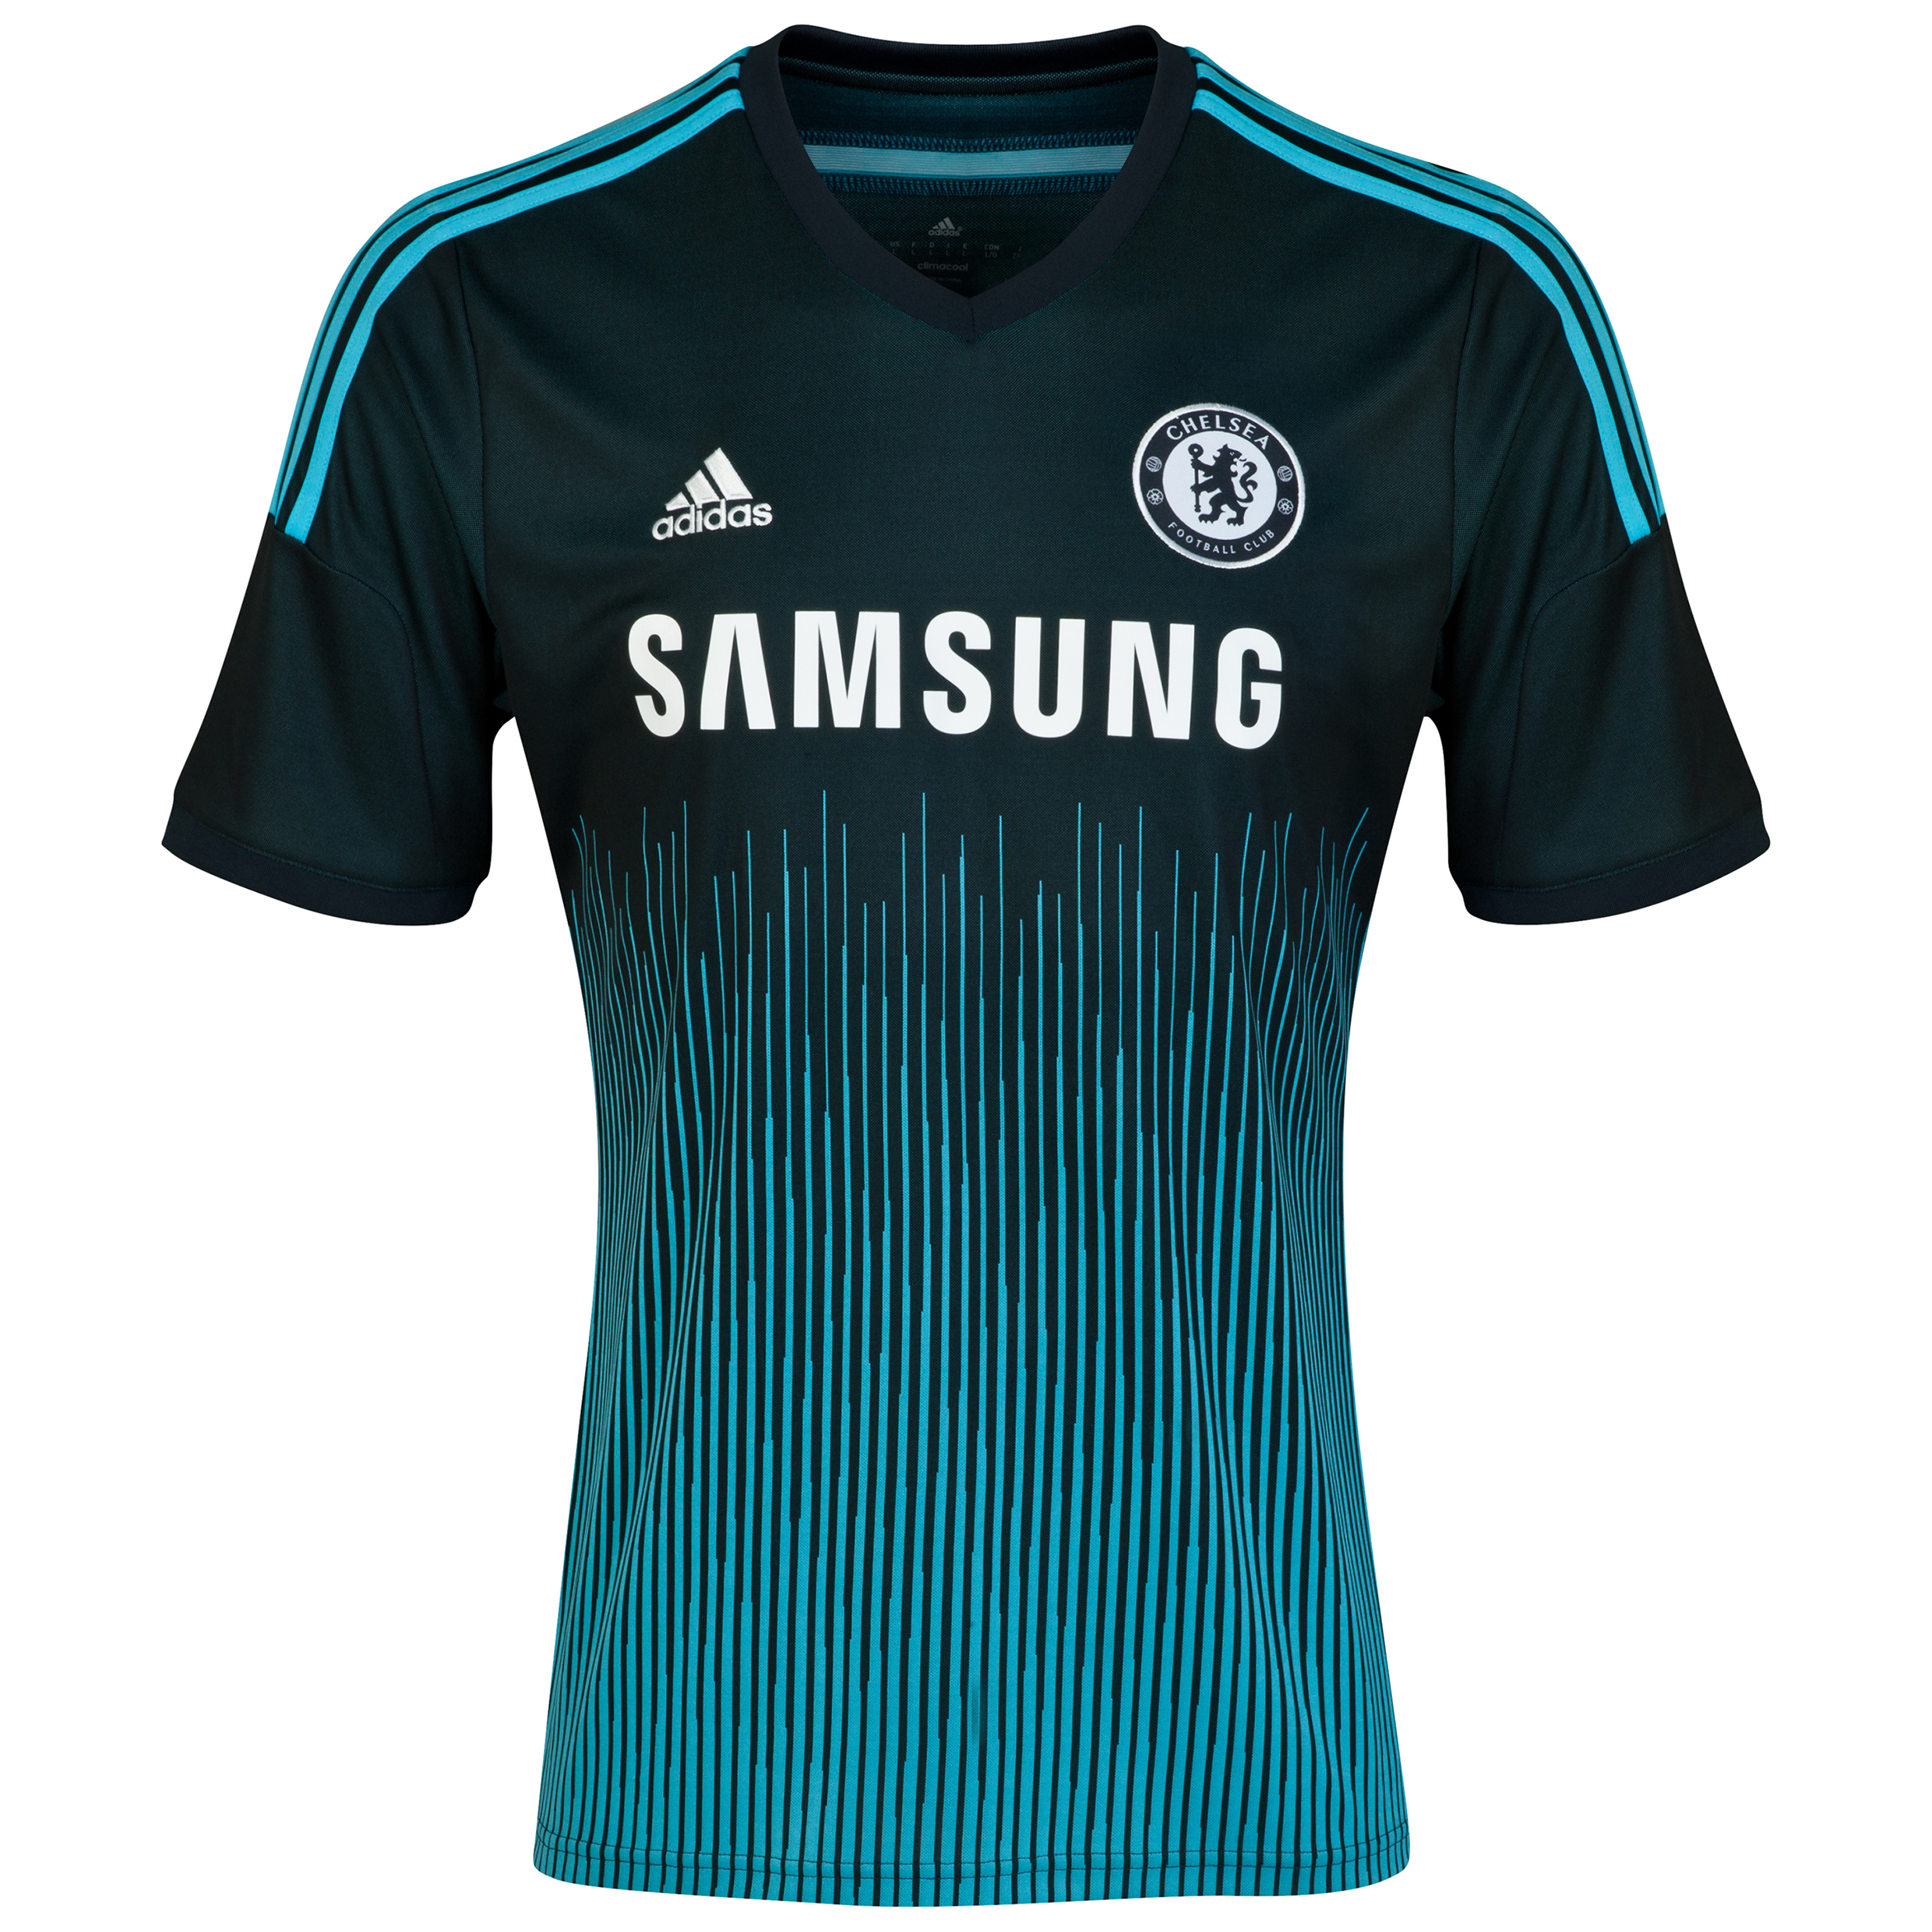 Chelsea Third Shirt 2014/15 - Kids   This dark blue 2014/15 adidas Kid's Chelsea Third Shirt has Climacool® ventilation to help your child stay cool and dry as Chelsea lights up the pitch.   With an engineered fabric showing the team crest on the left of the chest and adidas three stripe logo on the right, young Chelsea fans can wear this Third jersey with pride.   Benefits of this Chelsea third shirt •Ventilated Climacool® keeps you cool and dry •Engineered fabric